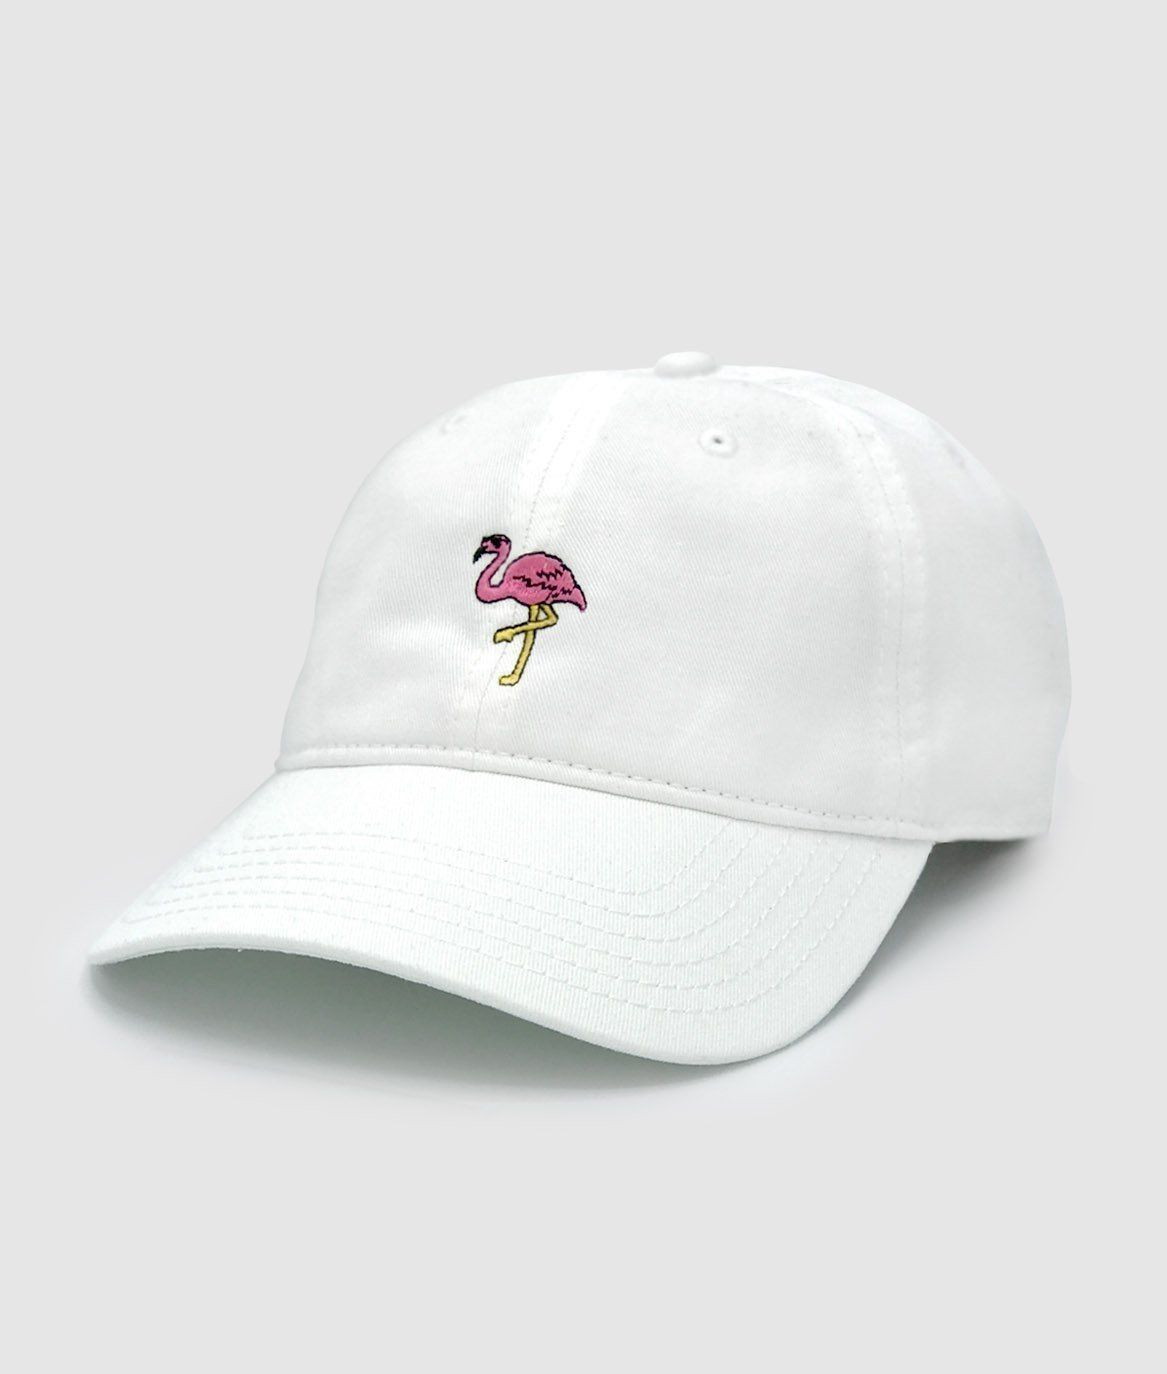 Waldeal Girls Adjustable Rose Flamingo Art Kids Mesh Cap Trucker Hat